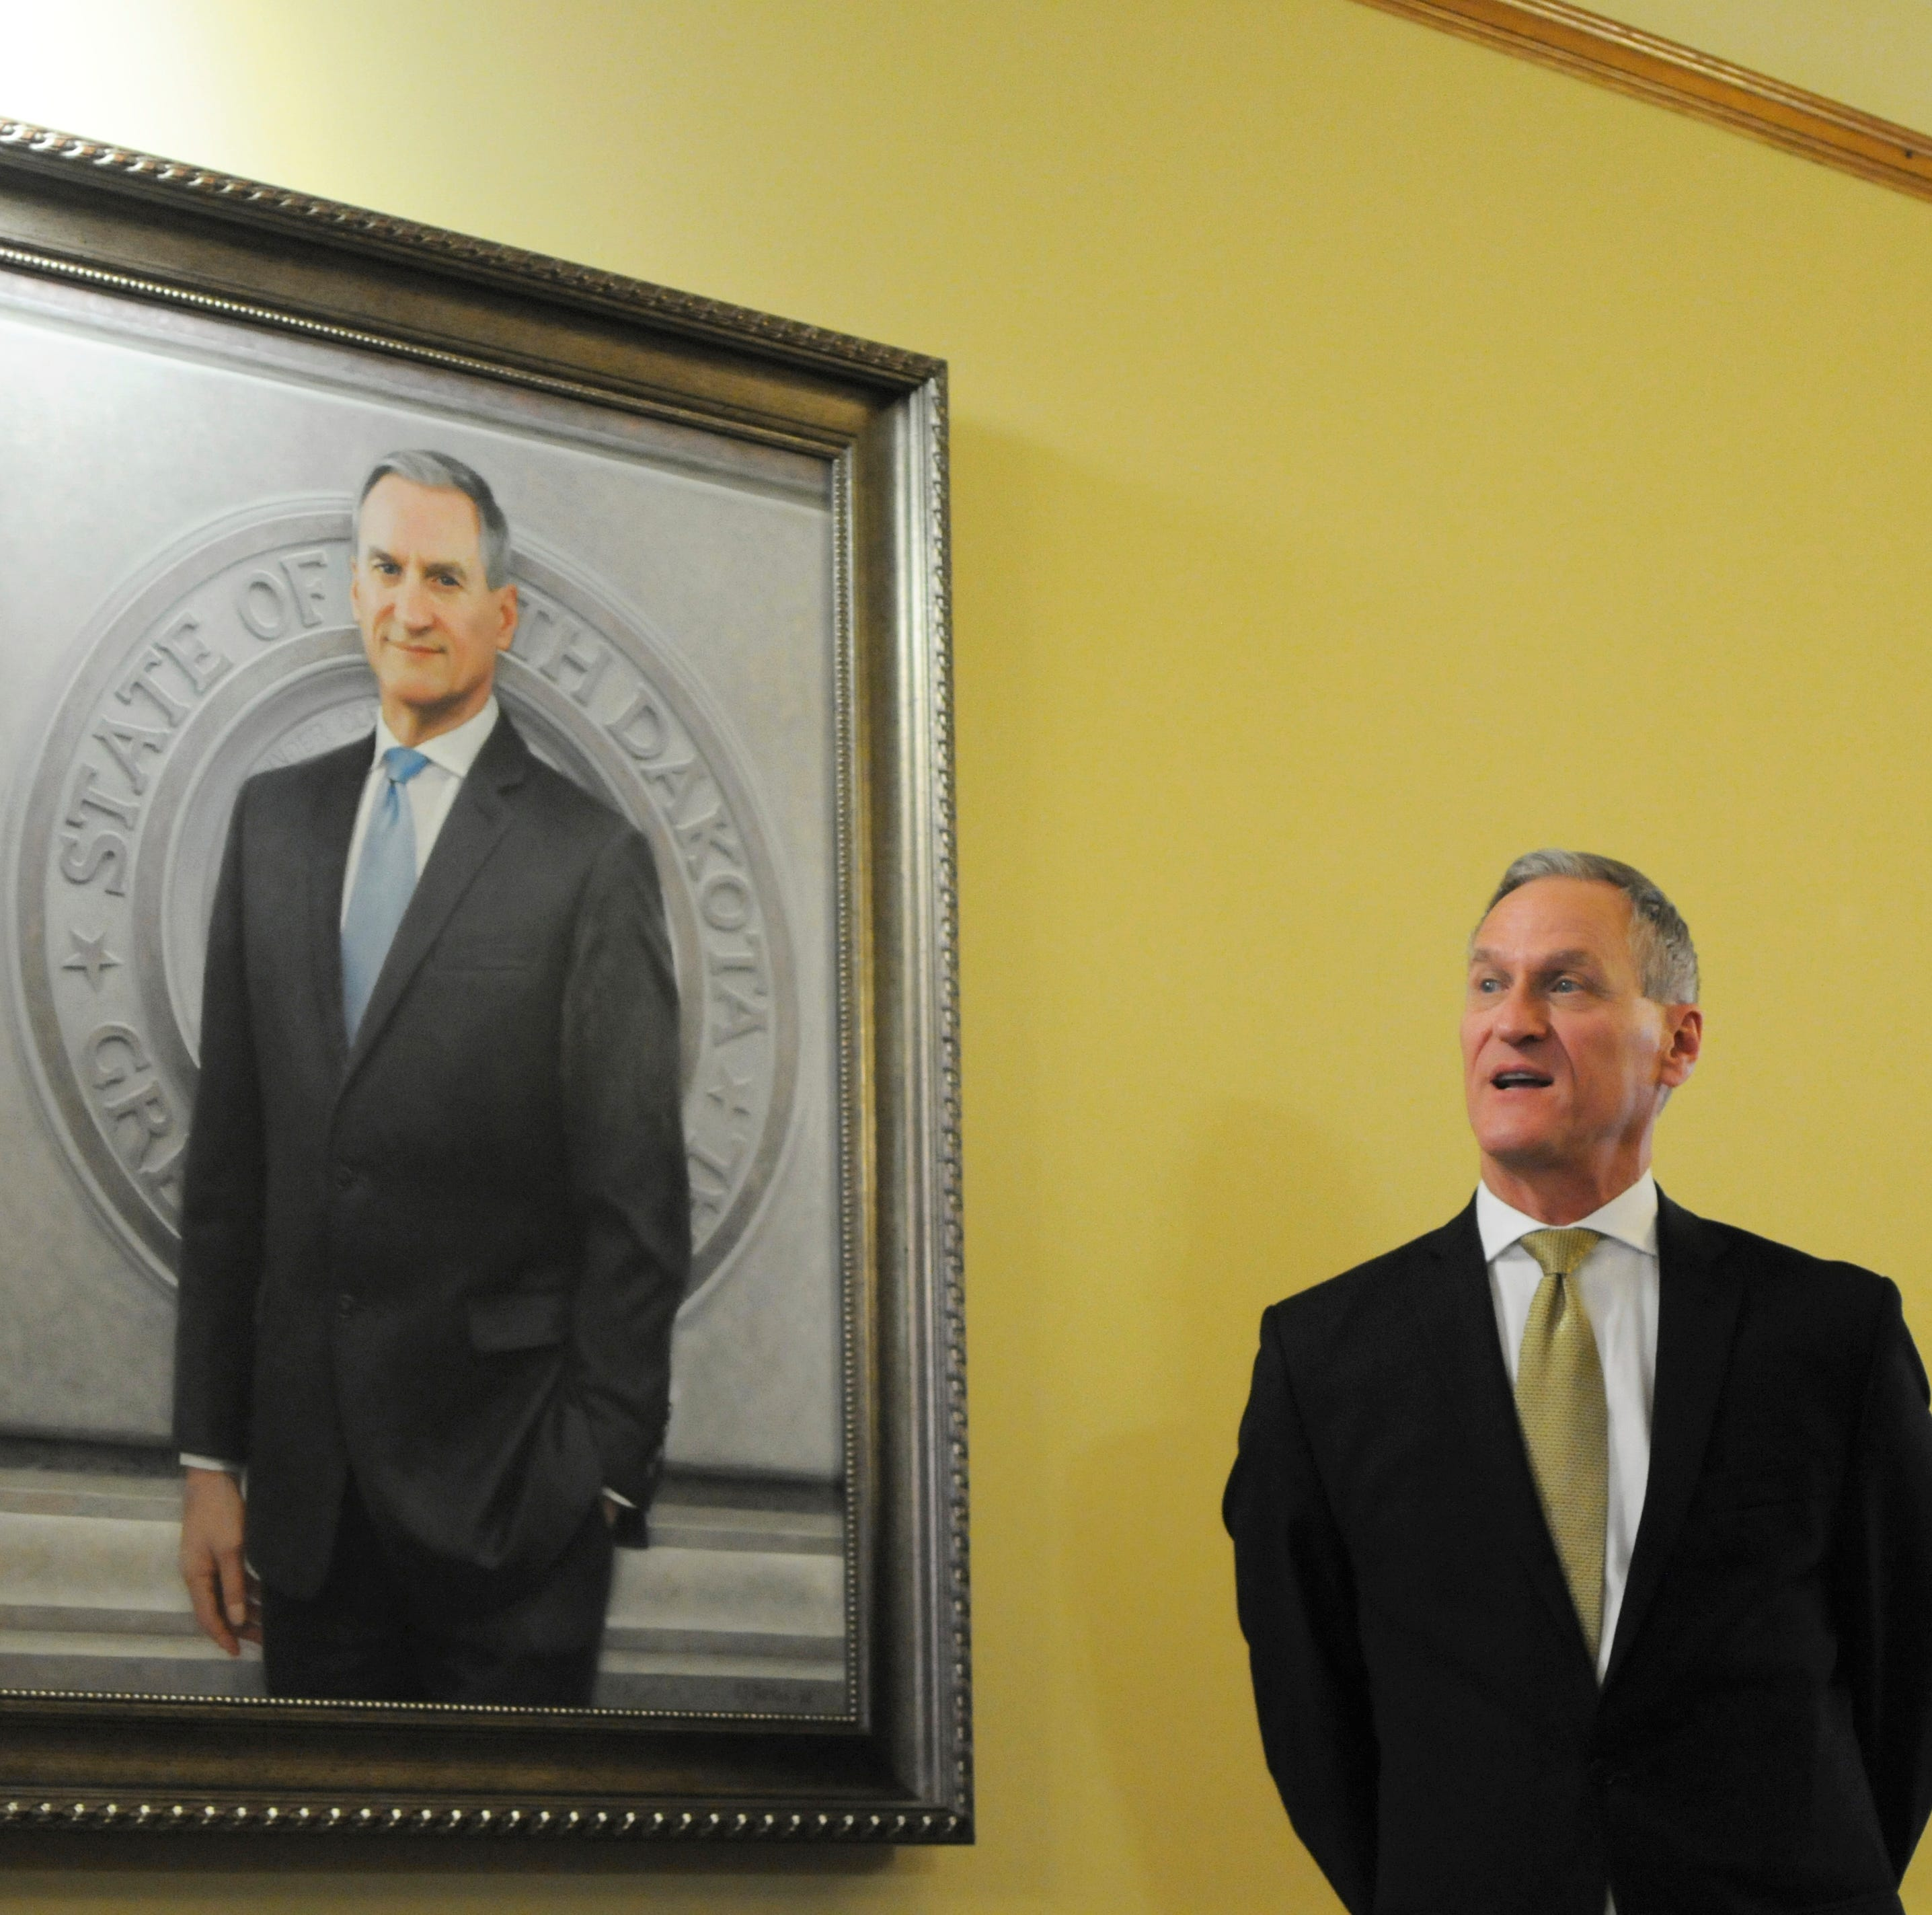 Gov. Dennis Daugaard speaks during the unveiling of his official Capitol portrait in Pierre on Tuesday after giving the state budget address. Connecticut artist Susan Booke Durkee painted the portrait after being chosen through a national selection process.